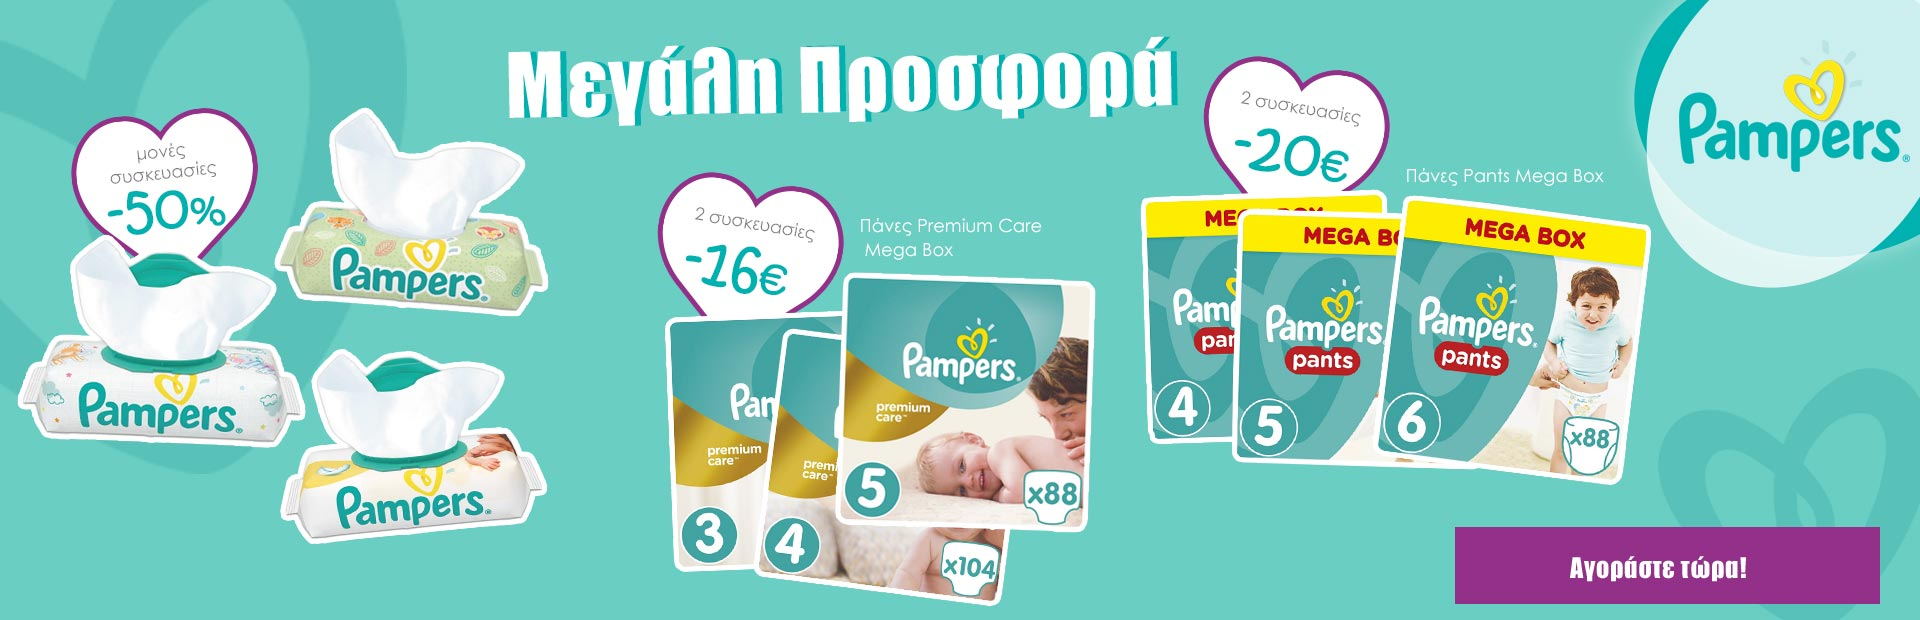 Pampers March Offer